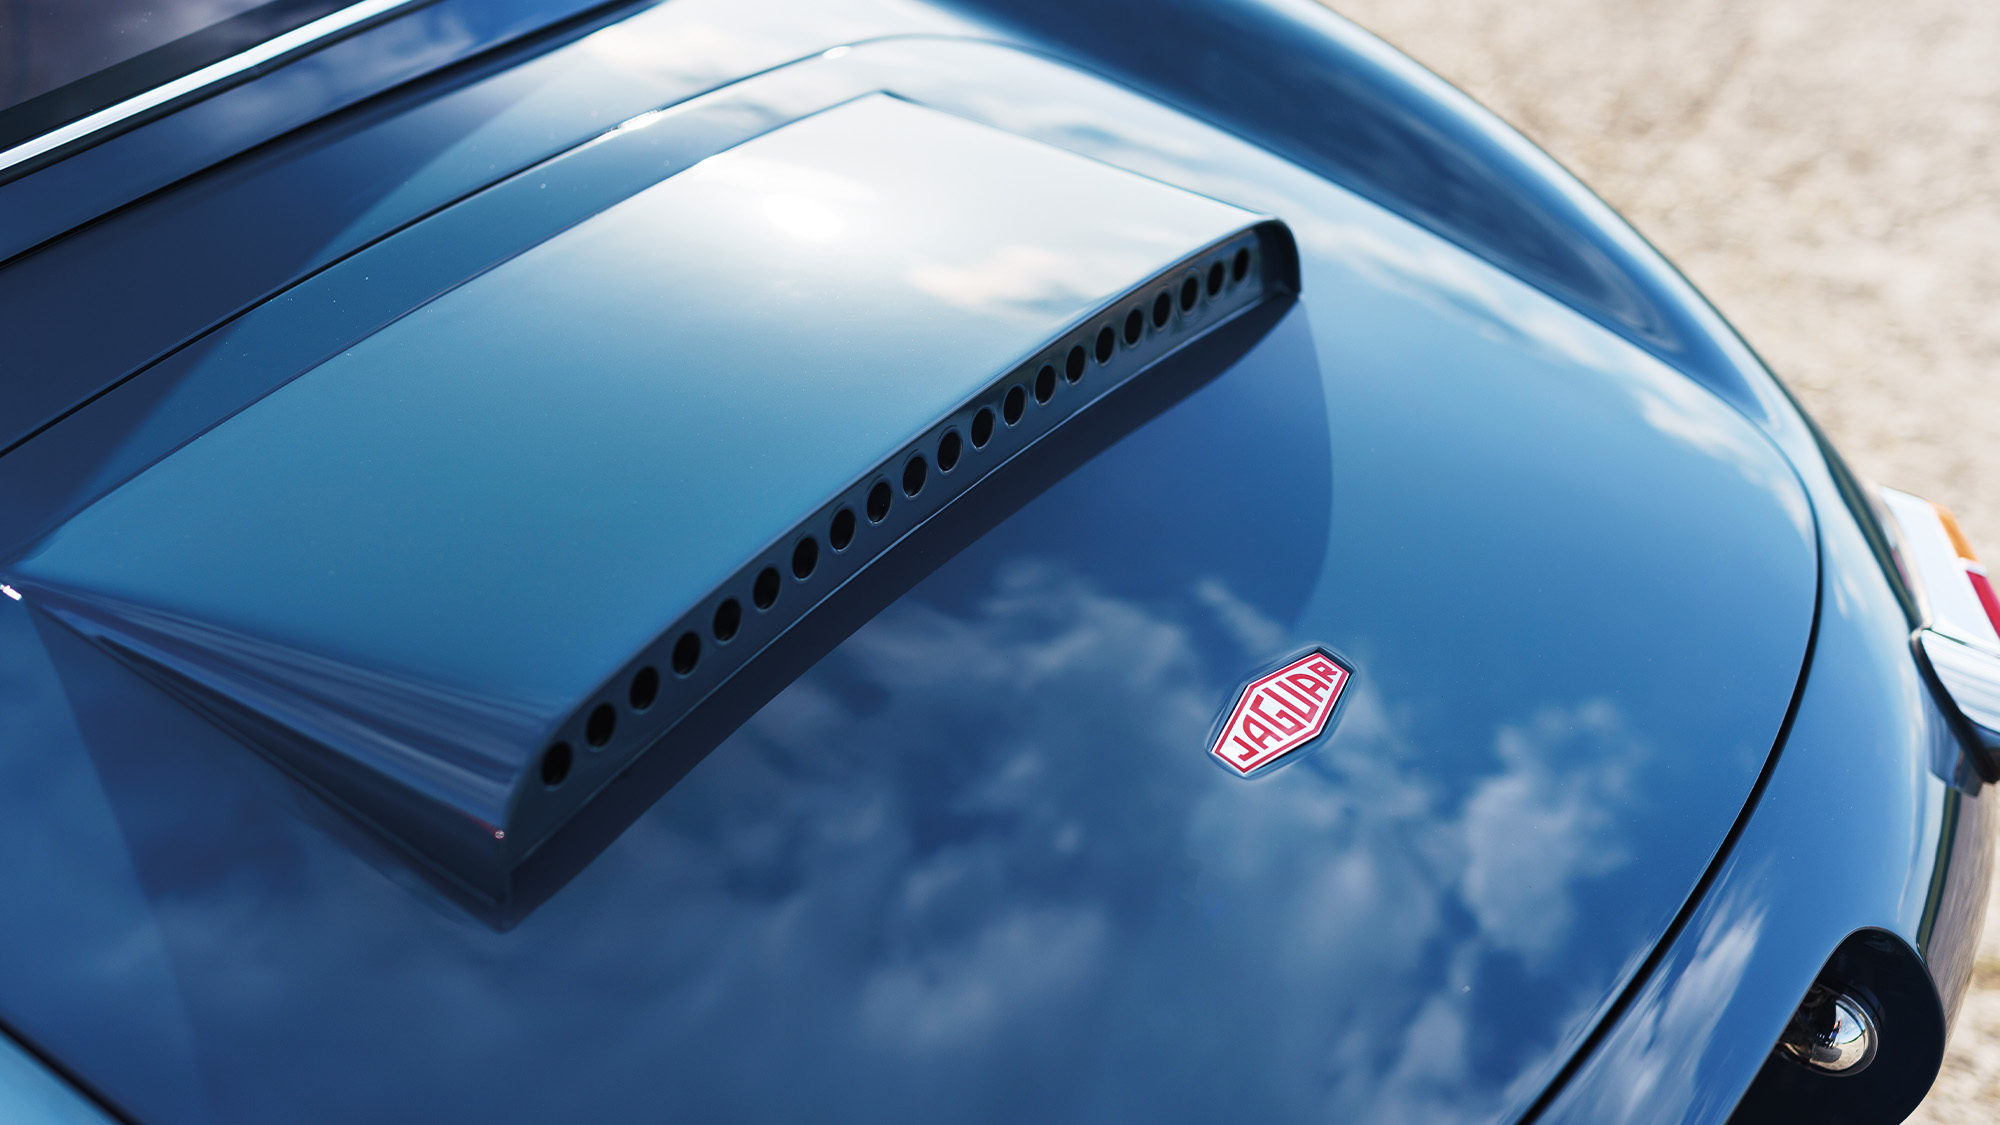 Rear boot lid of the 2020 Eagle E-type Lightweight GT